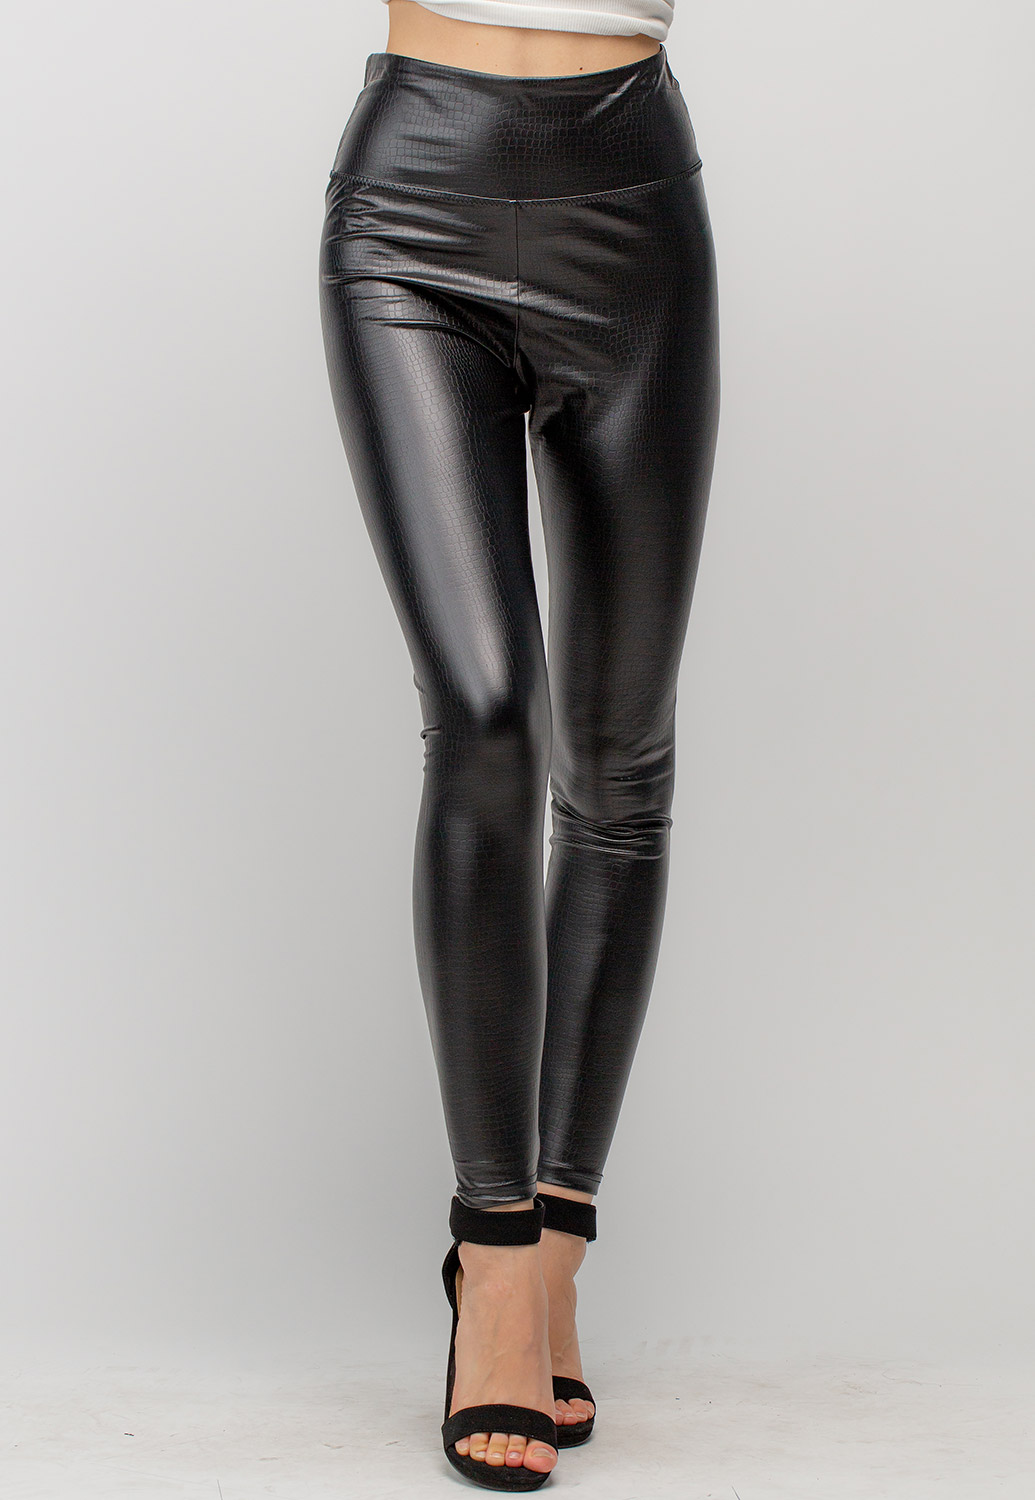 Stretchy Faux Leather Skinny Pants